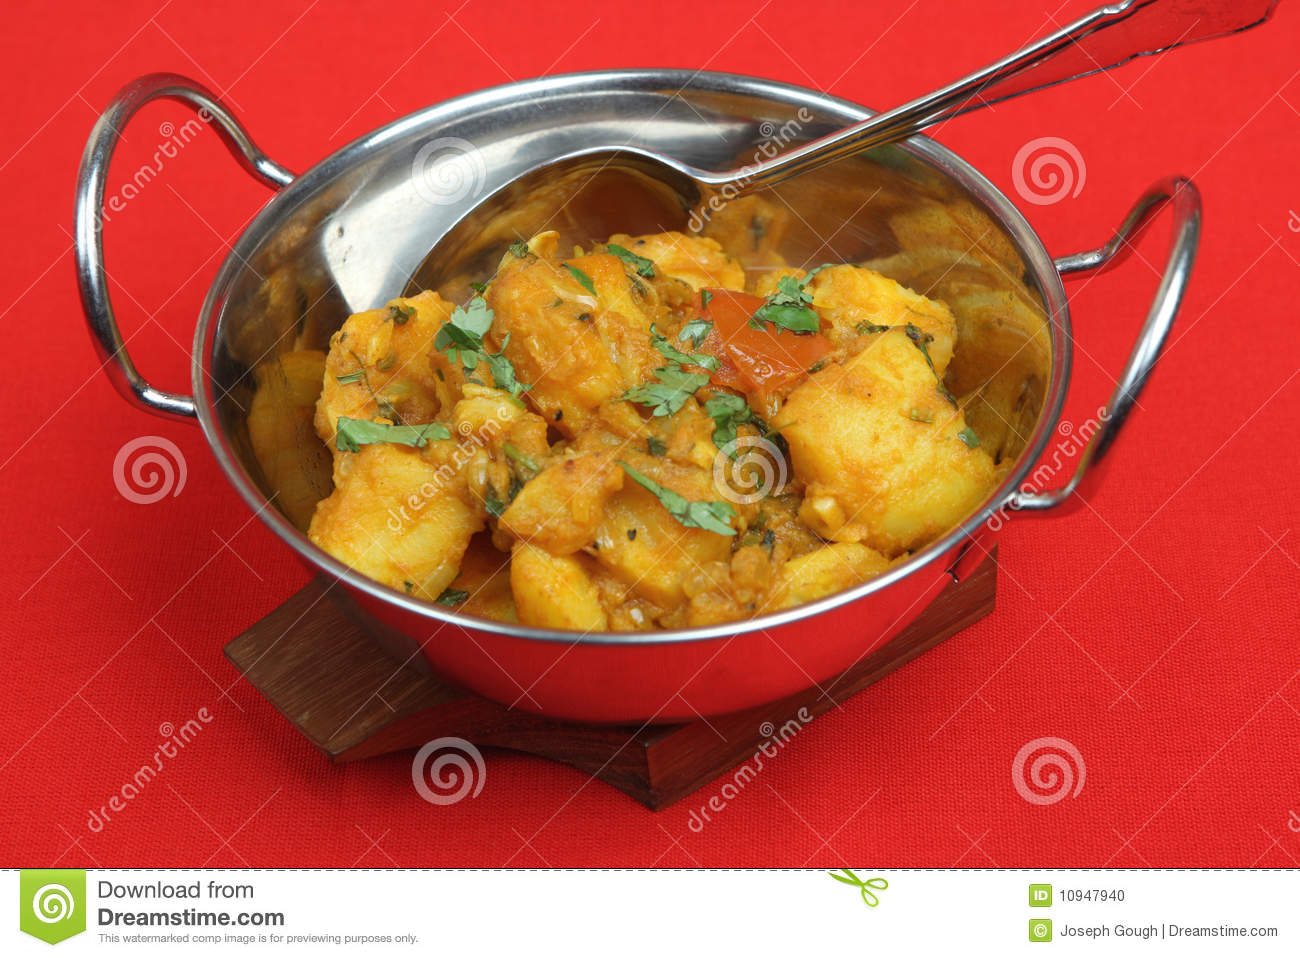 Indian Vegetable Curry Dish Stock Photo.